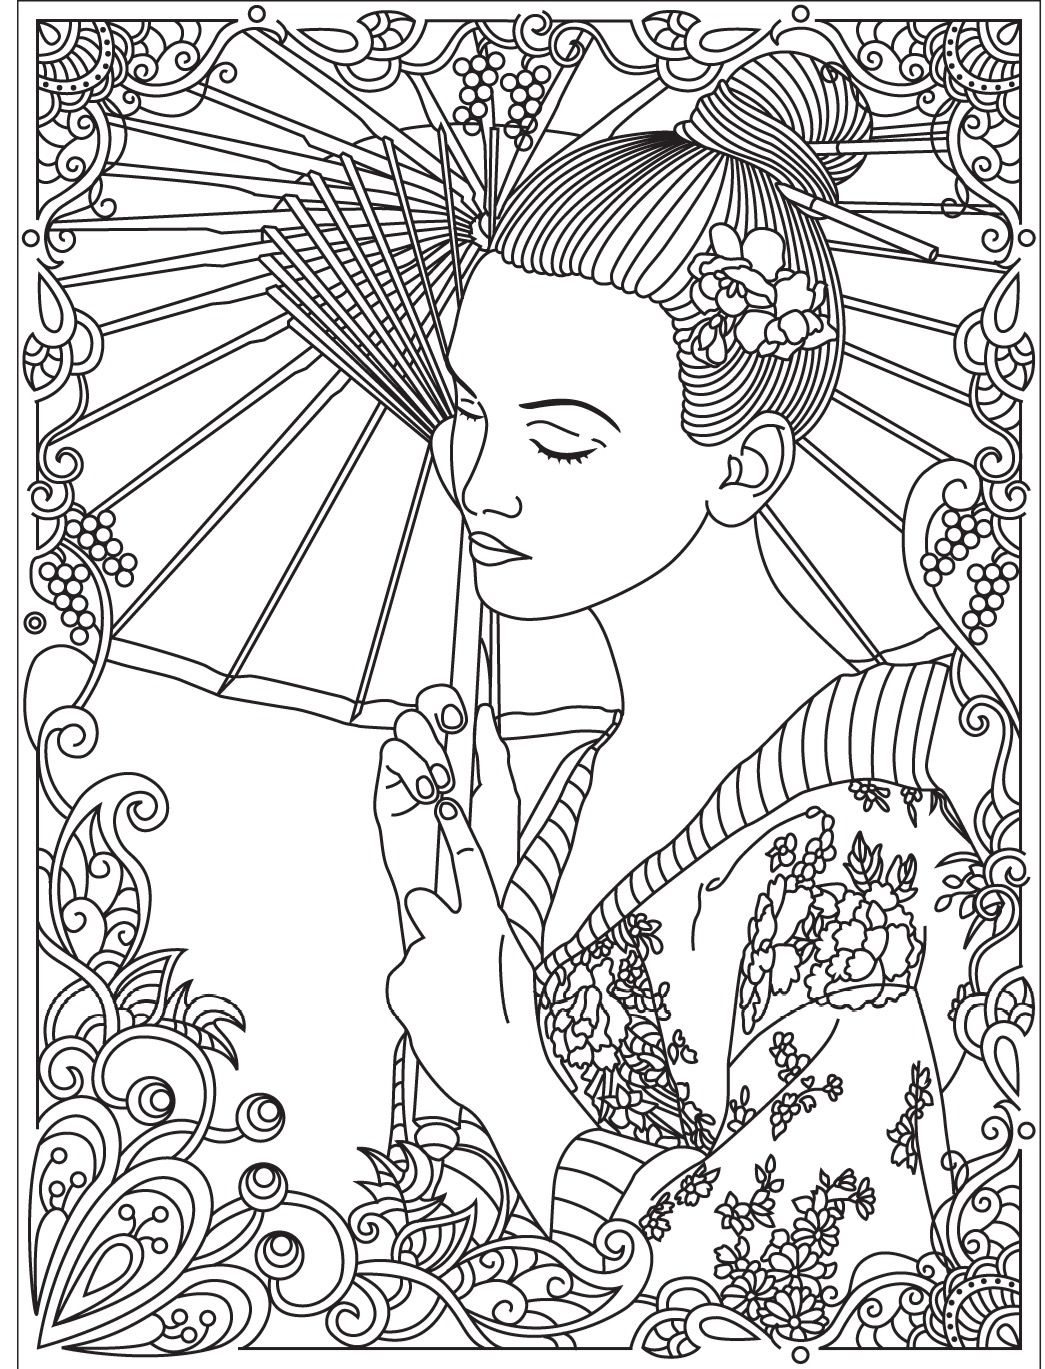 1045x1369 Stunning Relaxation Coloring Pages Image Of For Adults Japanese